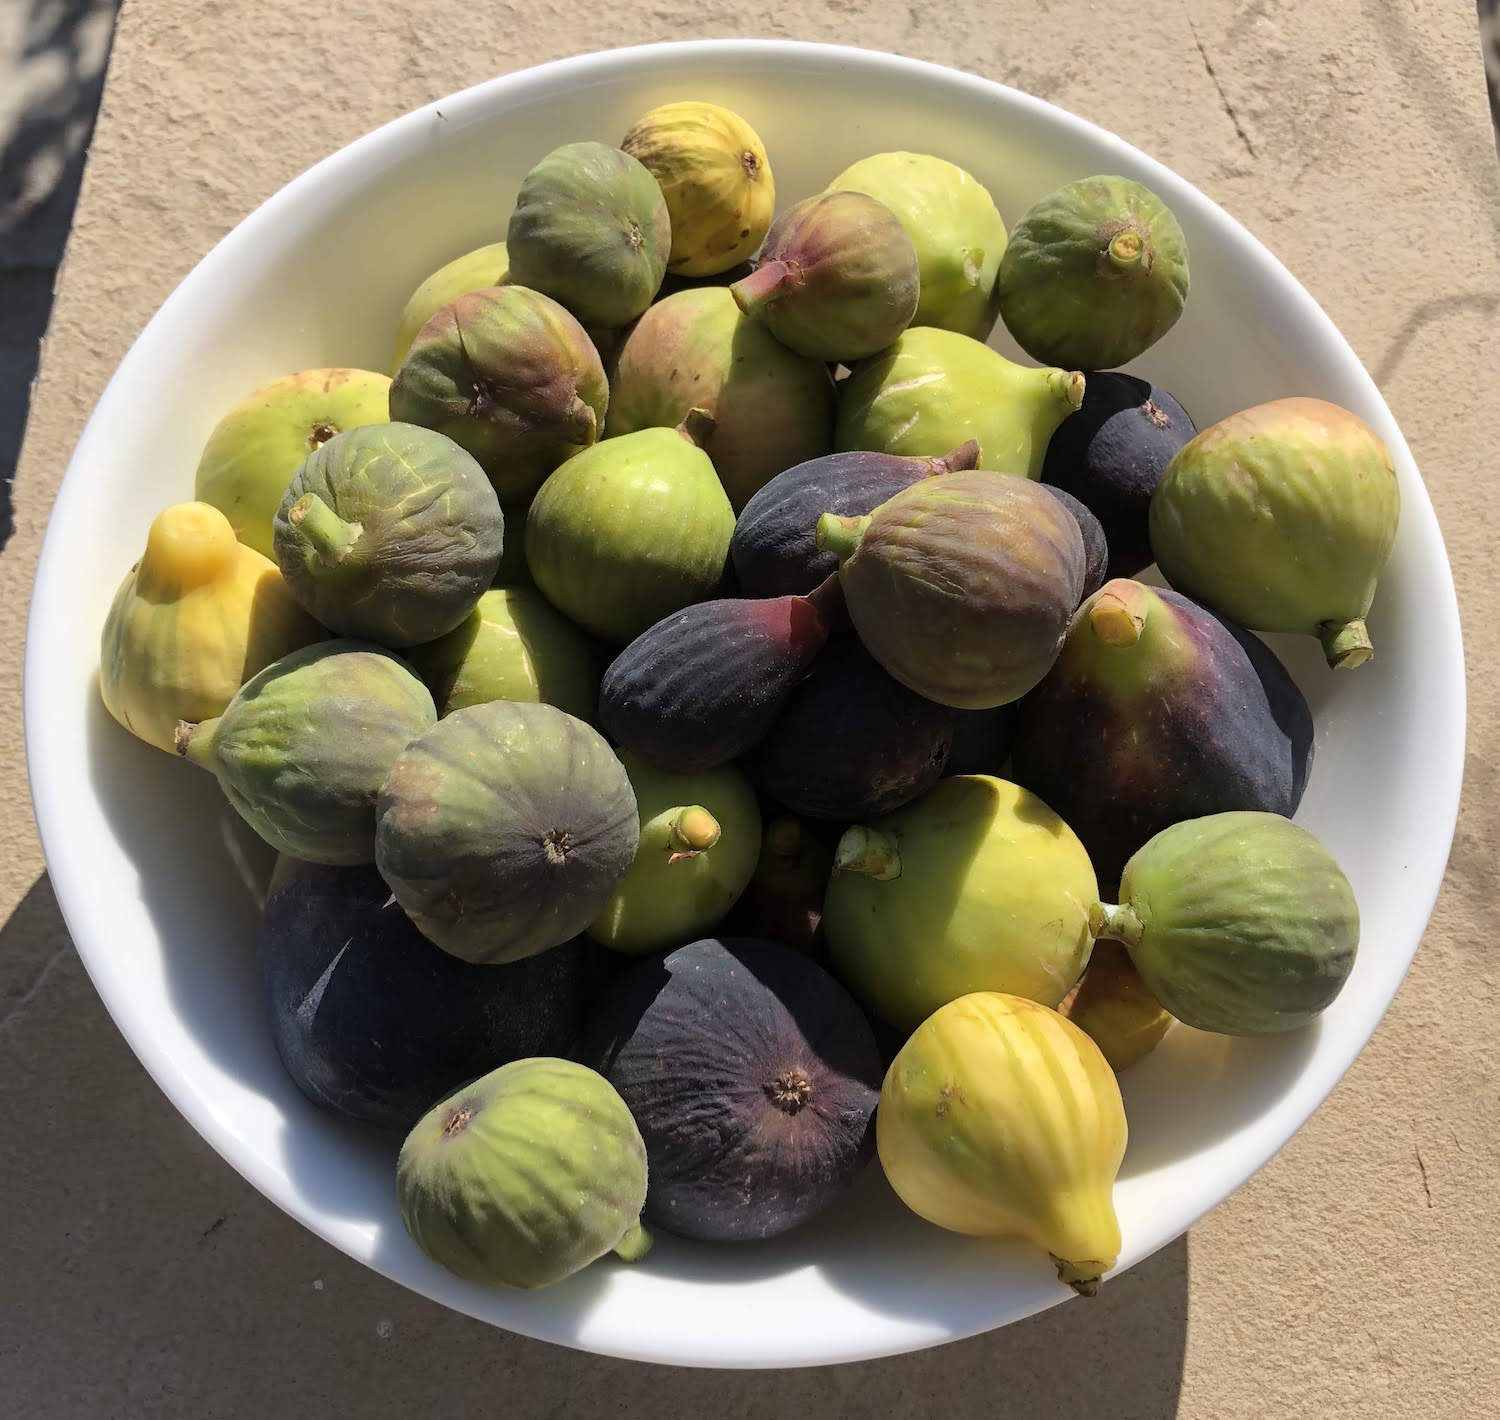 Figs_in_bowl_2018-08-26